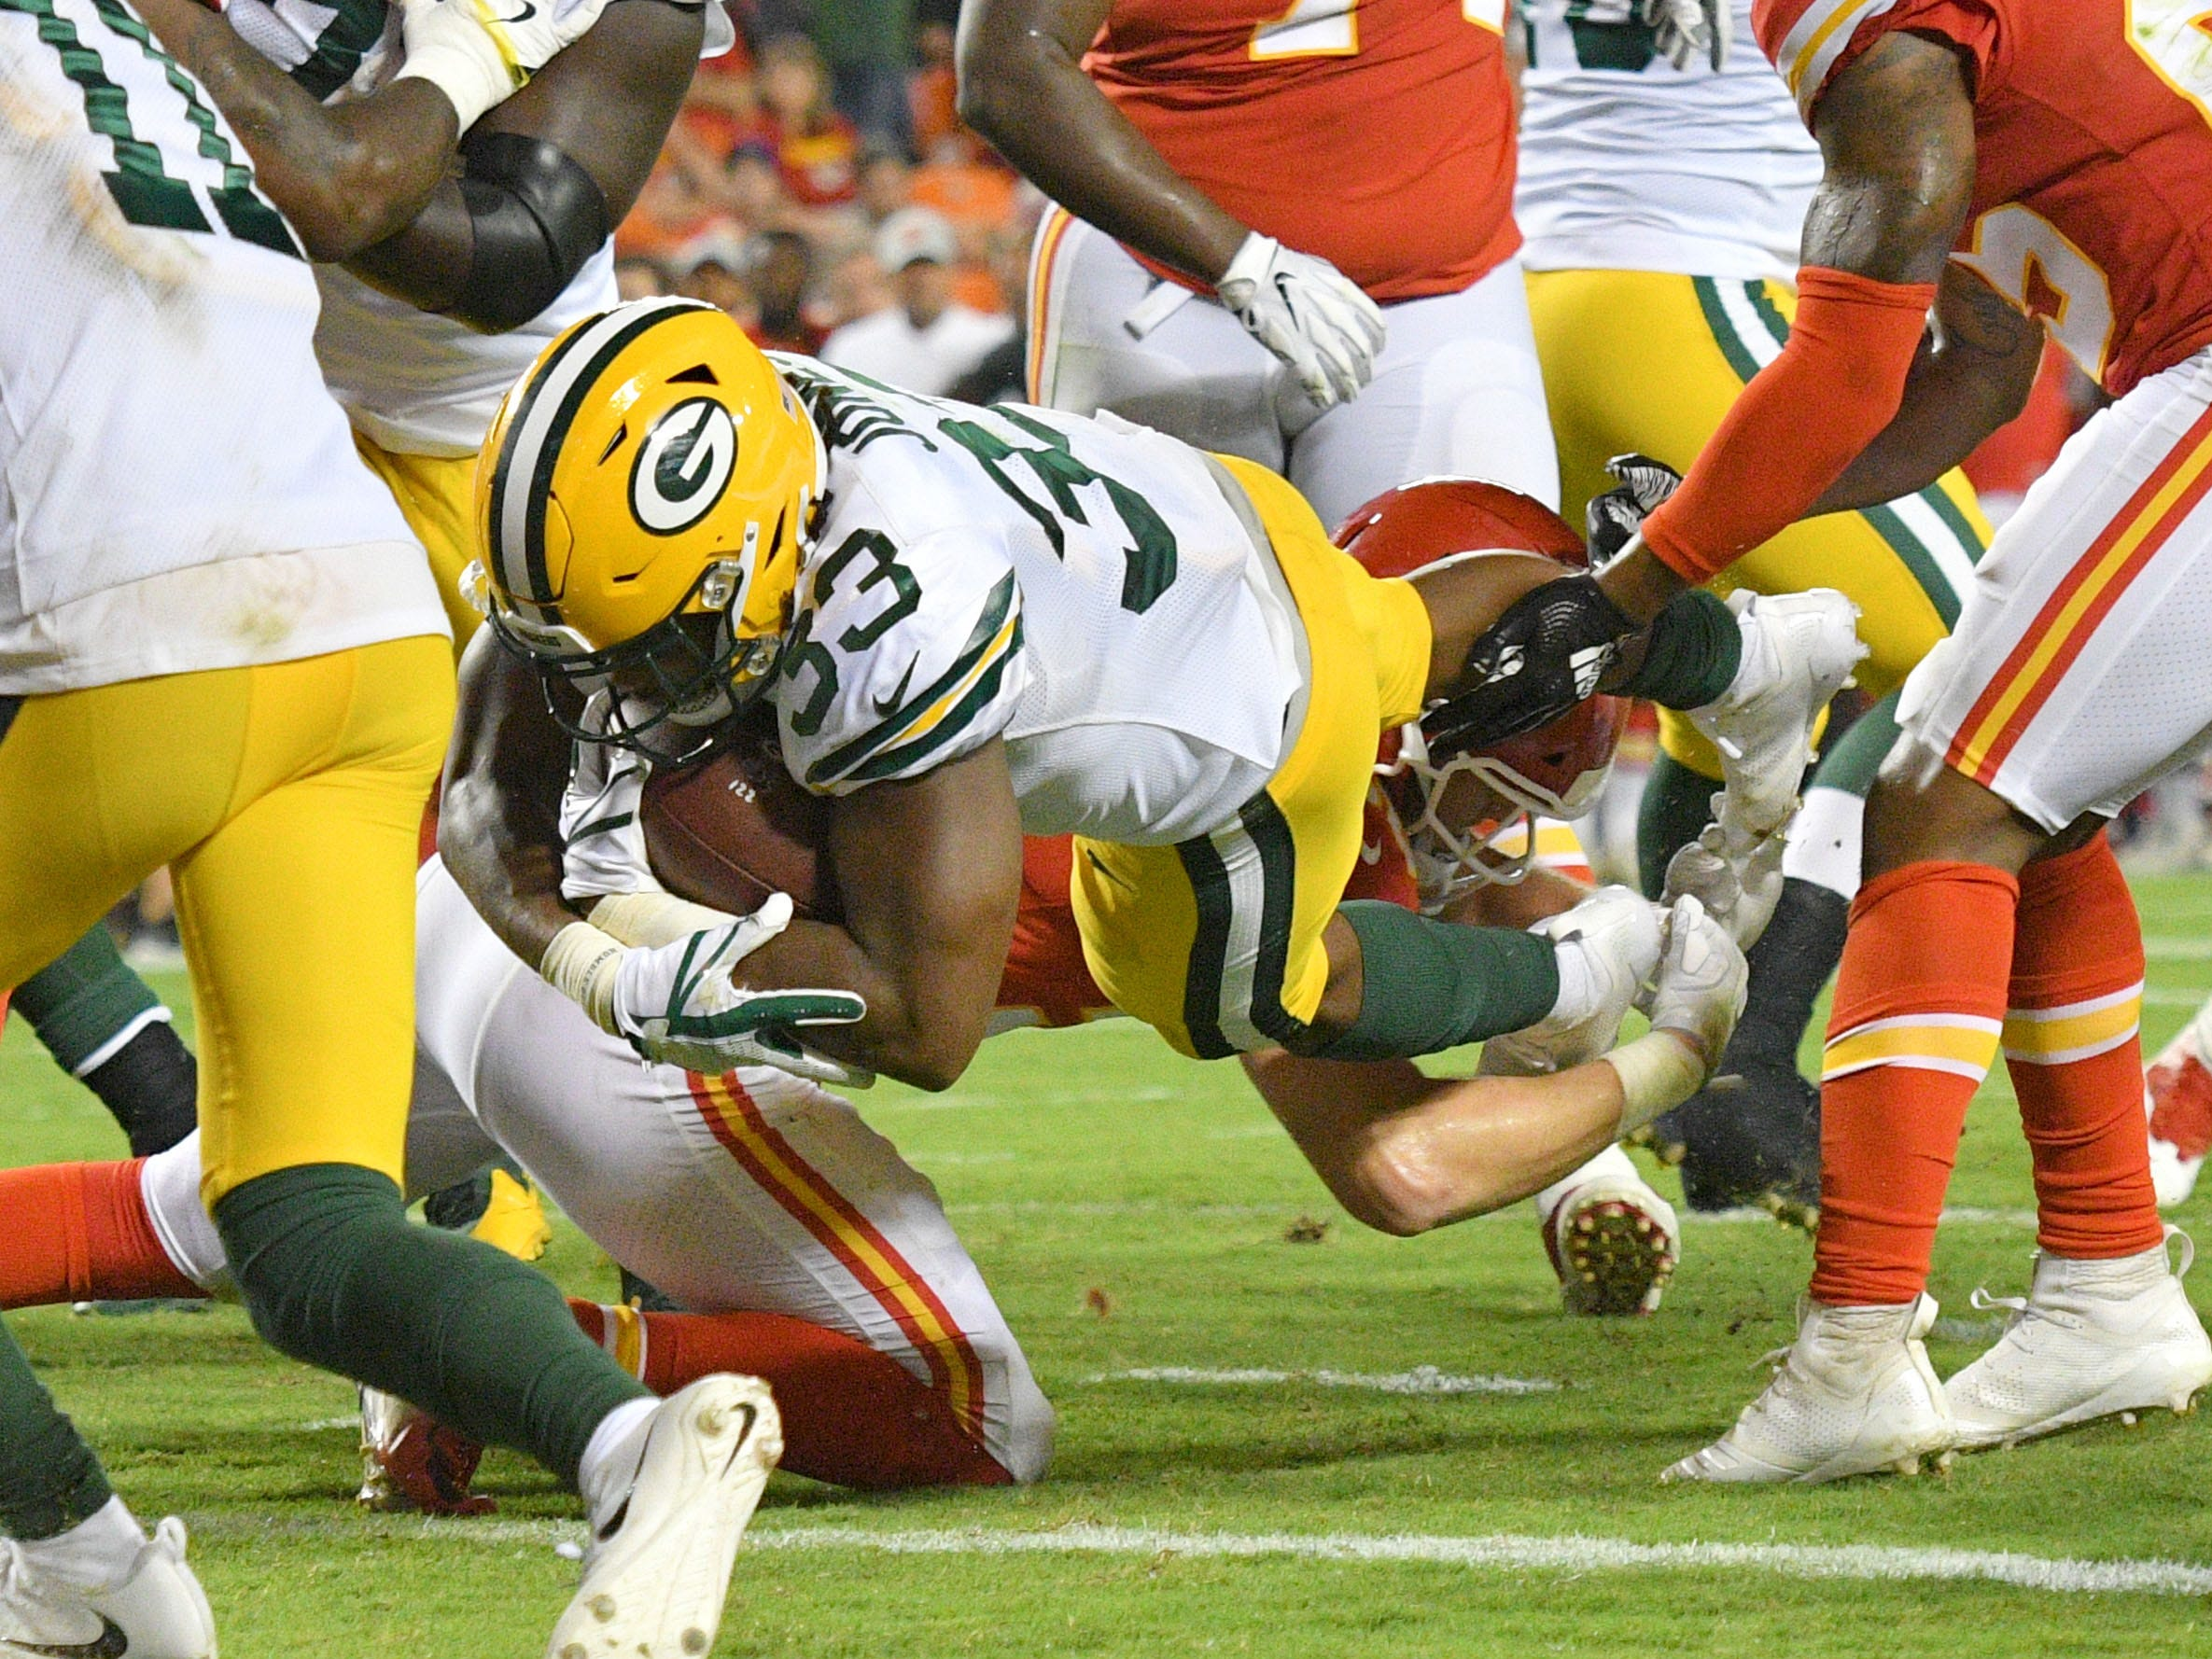 Aug 30, 2018; Kansas City, MO, USA; Green Bay Packers running back Aaron Jones (33) scores a touchdown and is tackled by Kansas City Chiefs linebacker Ben Niemann (56) during the first half at Arrowhead Stadium.